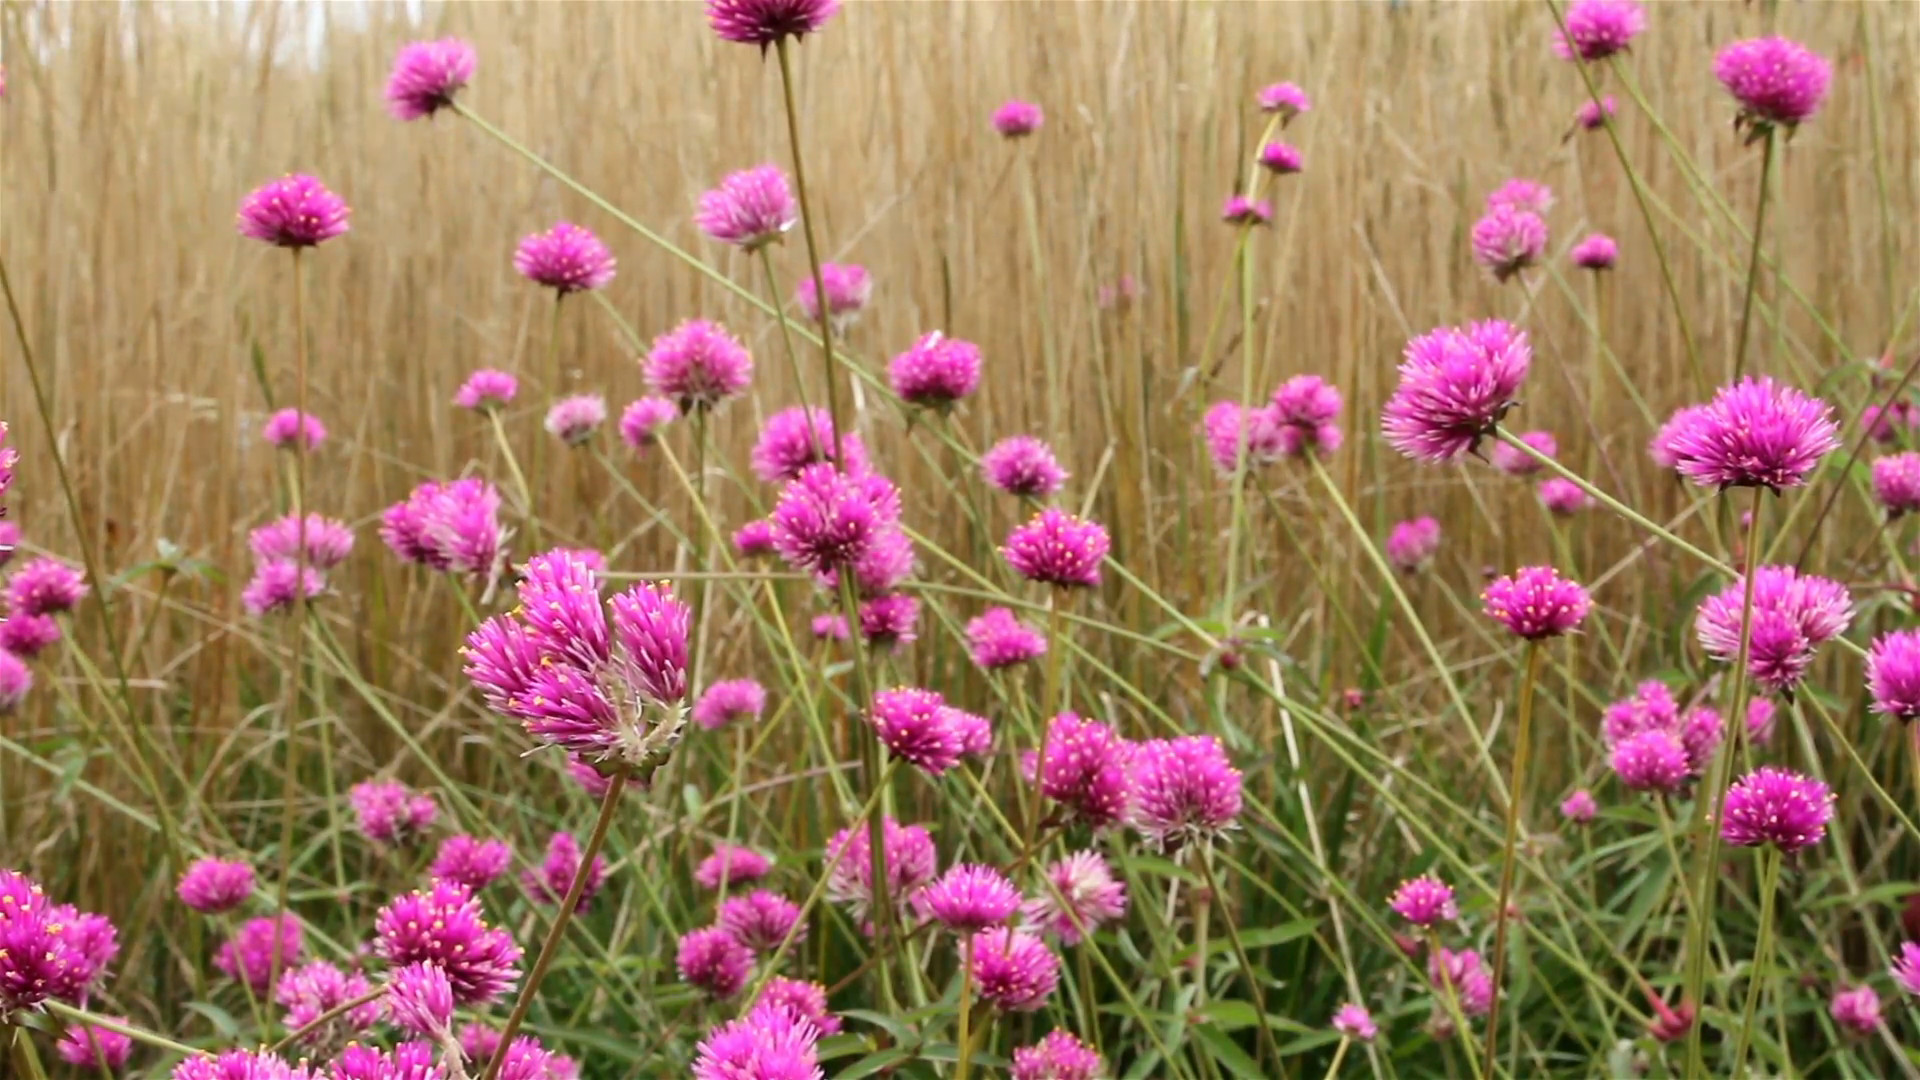 Res: 1920x1080, Pretty pink flowers swaying in the wind with long tall grass in the  background Stock Video Footage - Storyblocks Video